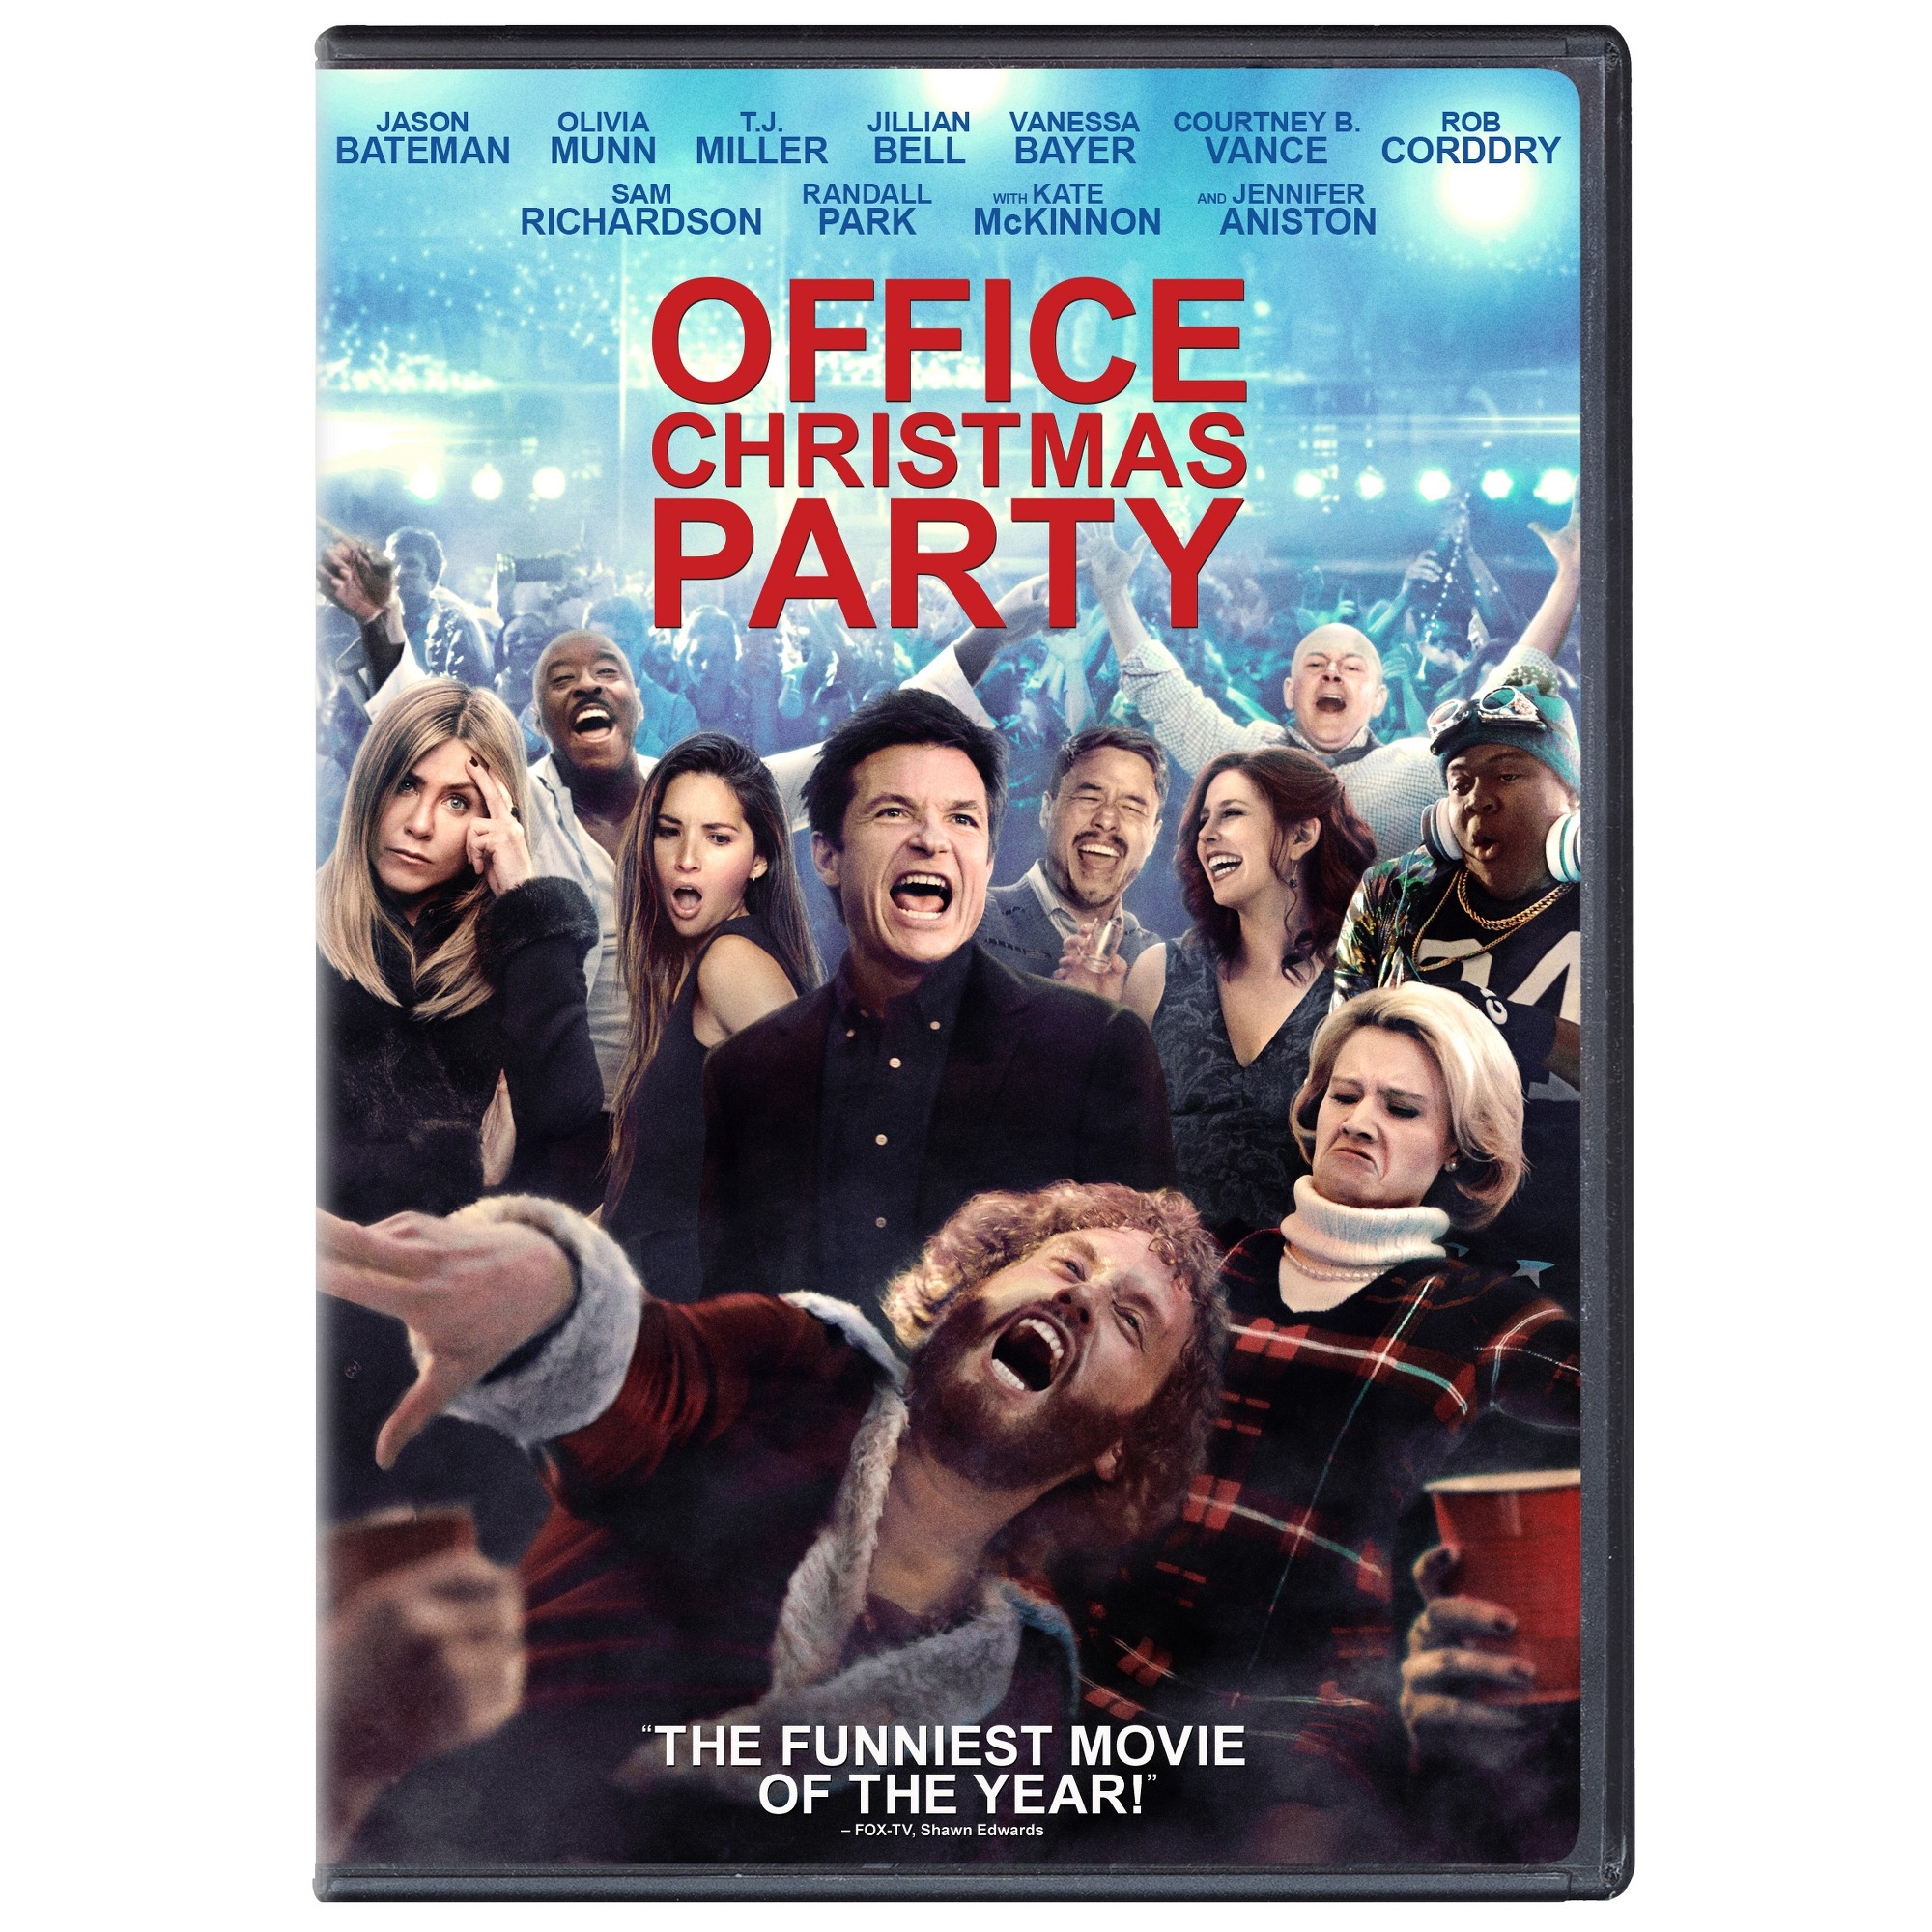 Office Christmas Party (Dvd) | Products in 2018 | Pinterest | Movies ...